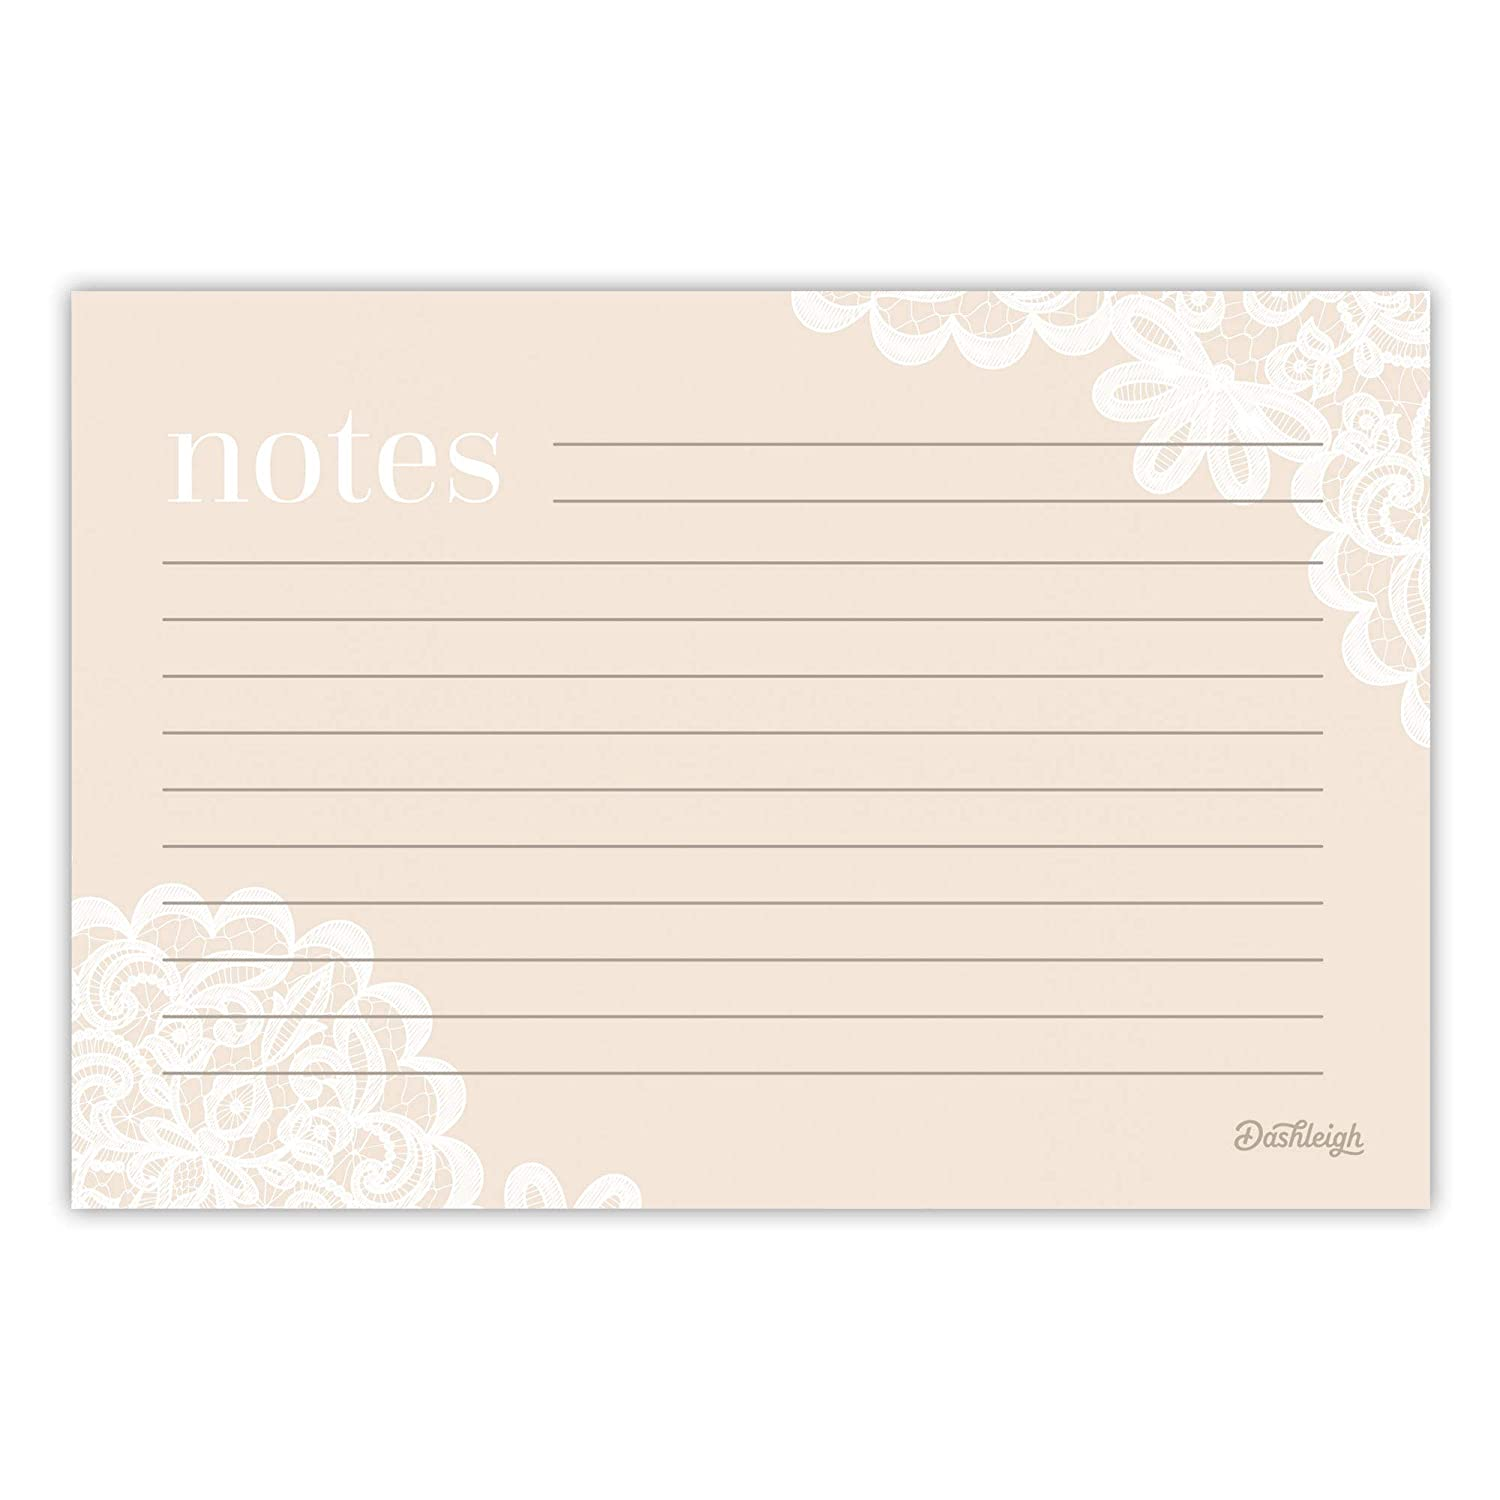 4 x 6 inches Blush Ultra Thick Double Sided Modern Lace Recipe Cards